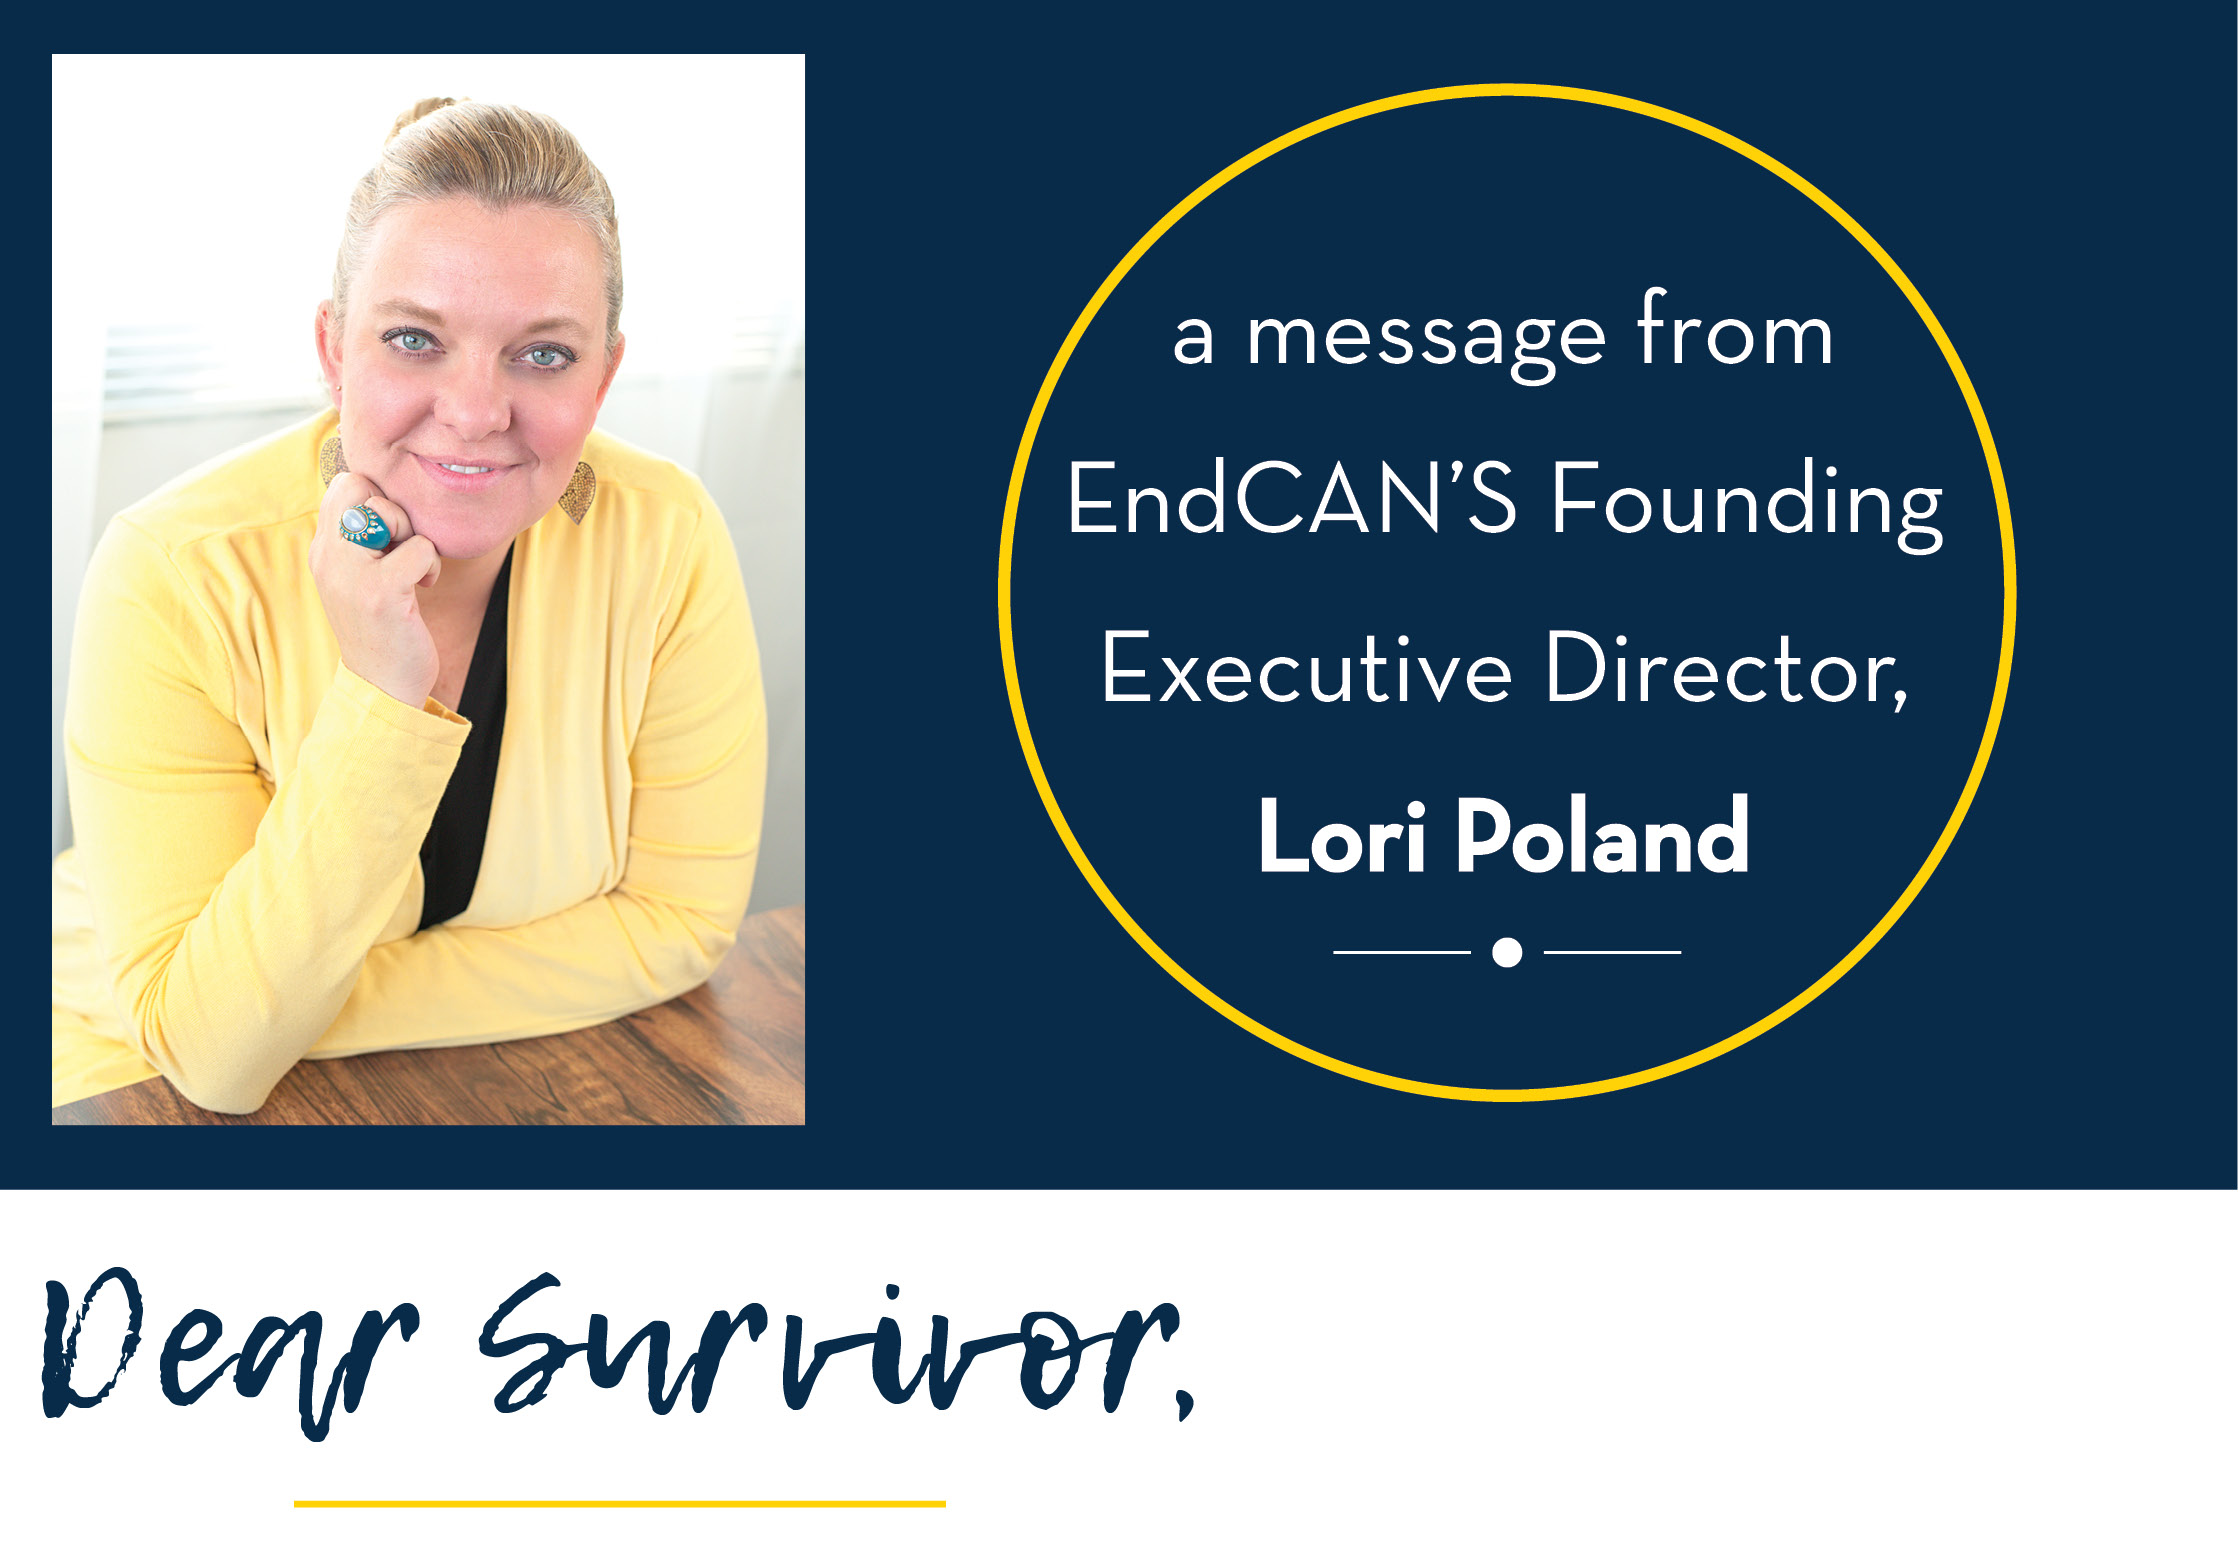 A photo of Lori Poland. a message from EndCAN Founding Executive Director, Lori Poland. Dear Survivor: